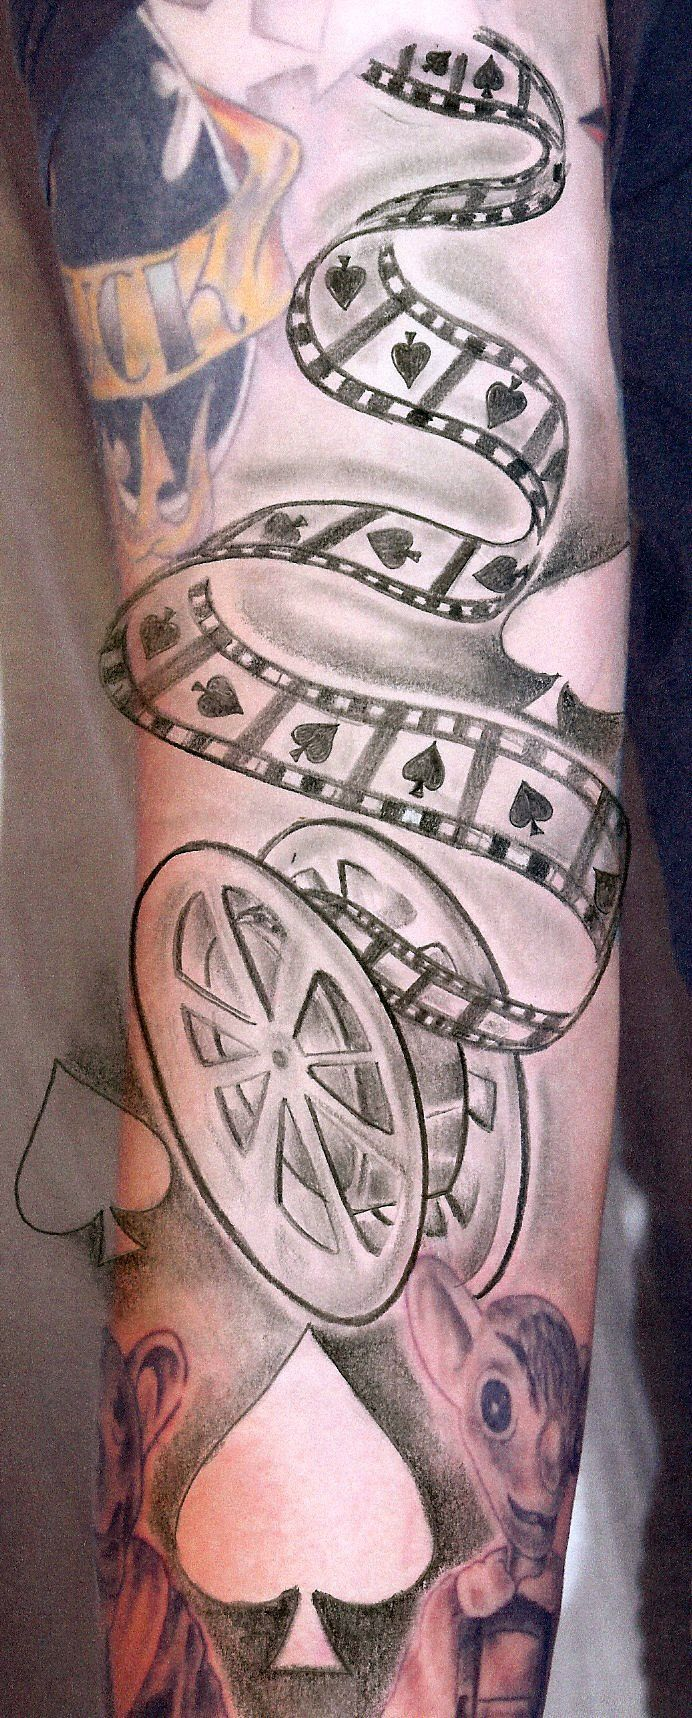 1000 Ideas About Ace Tattoo On Pinterest Tattoos Pics Ideas And Designs